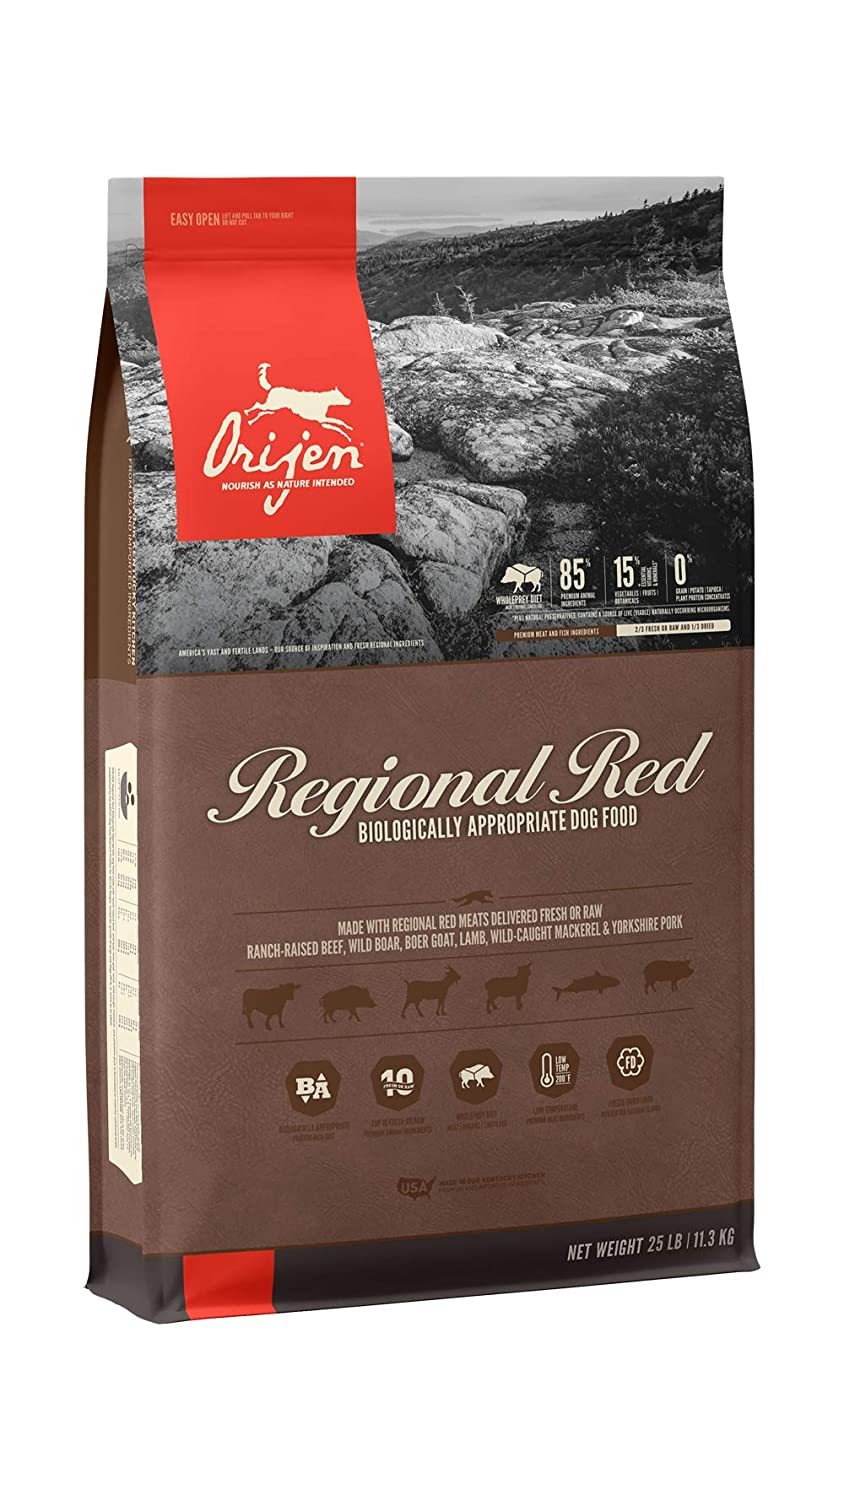 5.Orijen High-Protein, Grain-Free, Premium Quality Meat Dry Dog Food